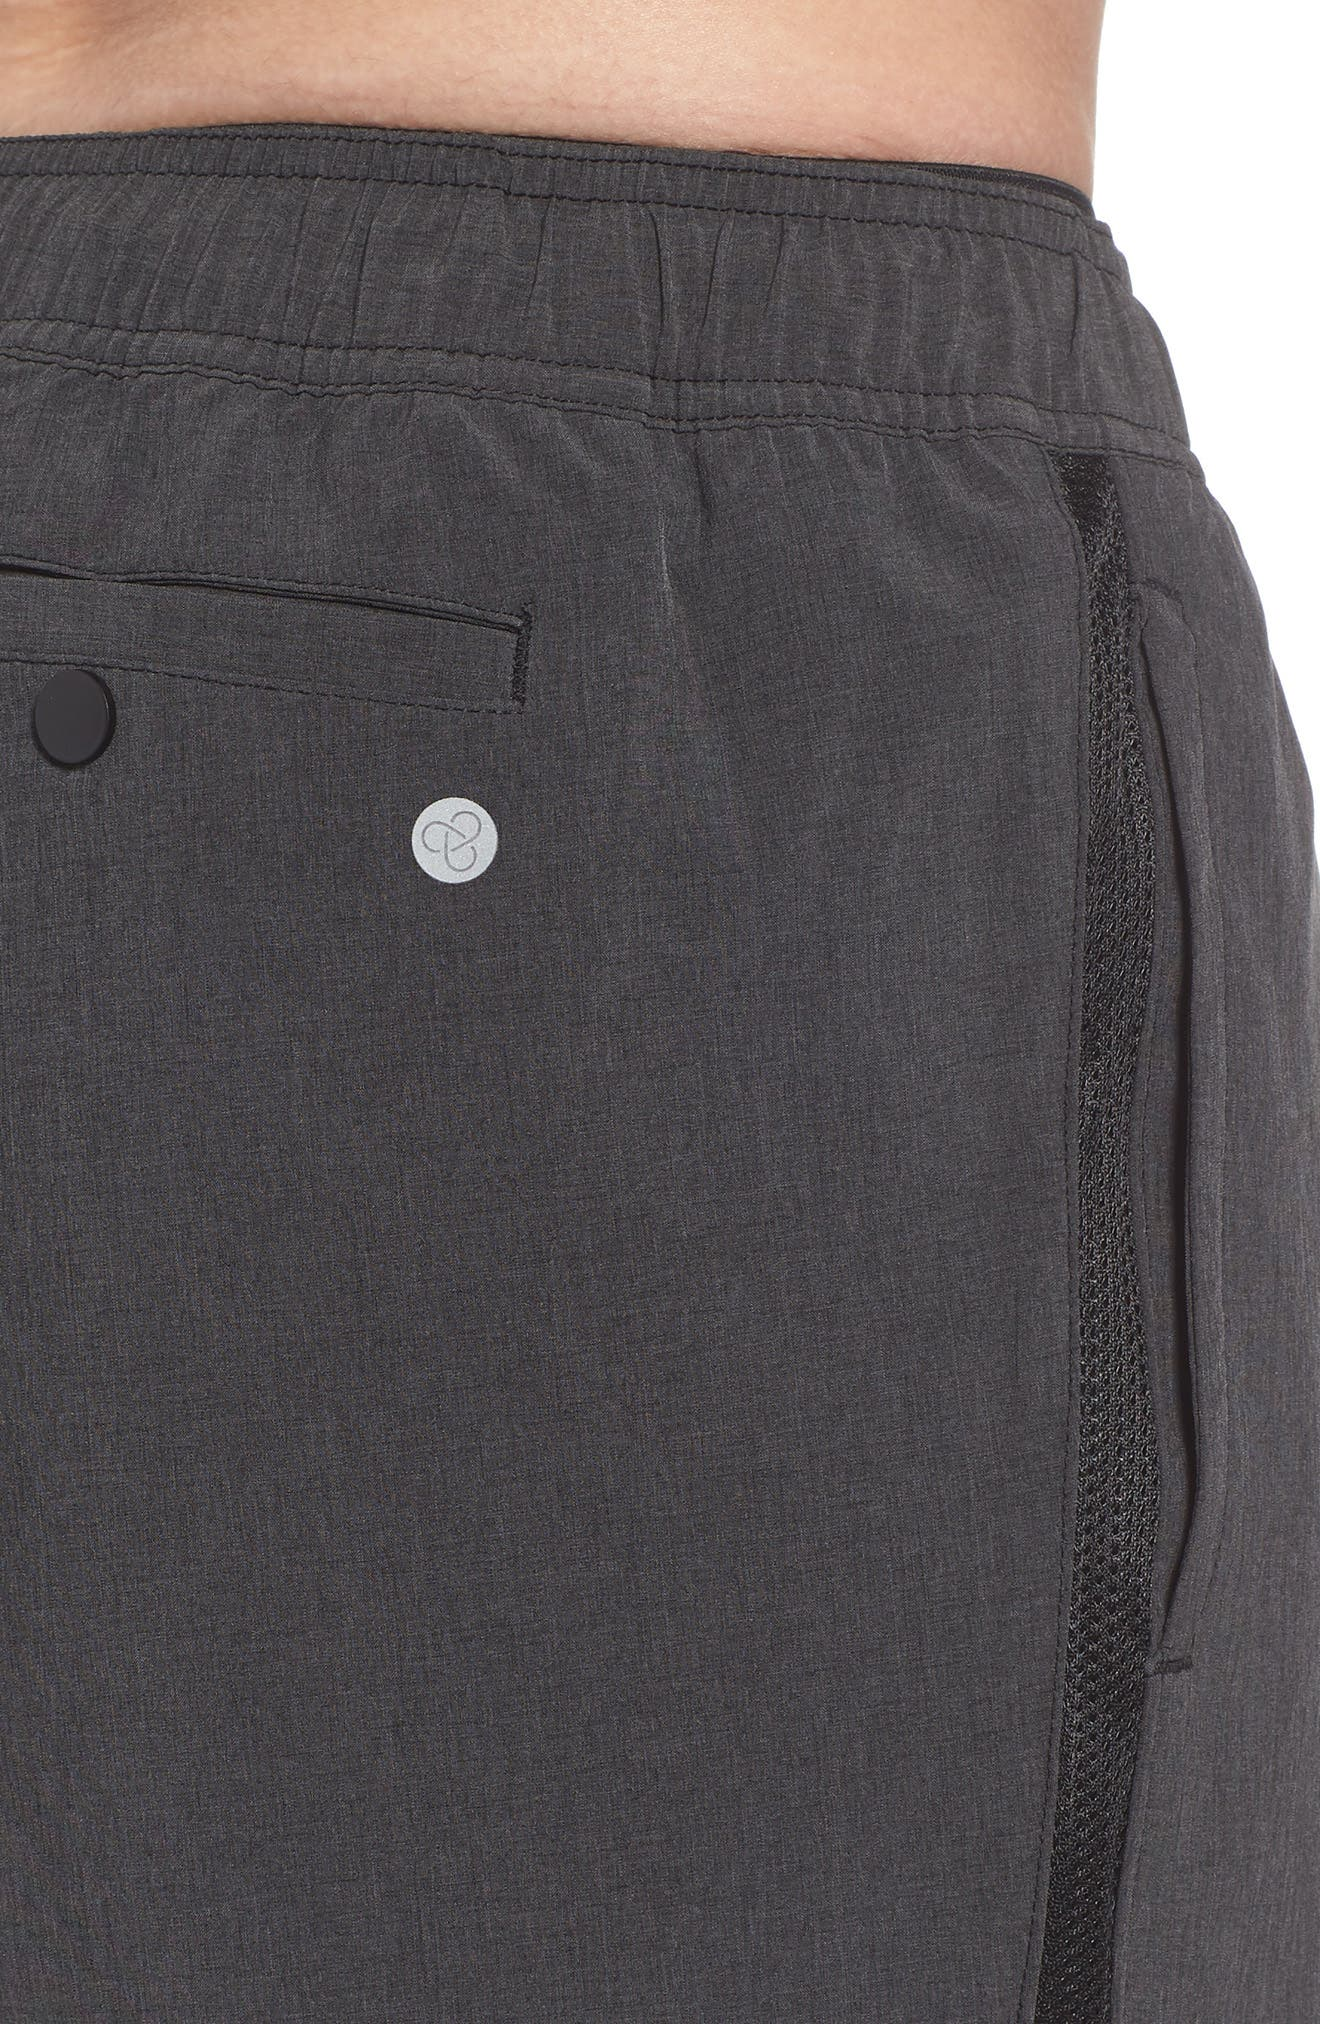 Stretch Swim Trunks,                             Alternate thumbnail 4, color,                             Black Oxide Heather